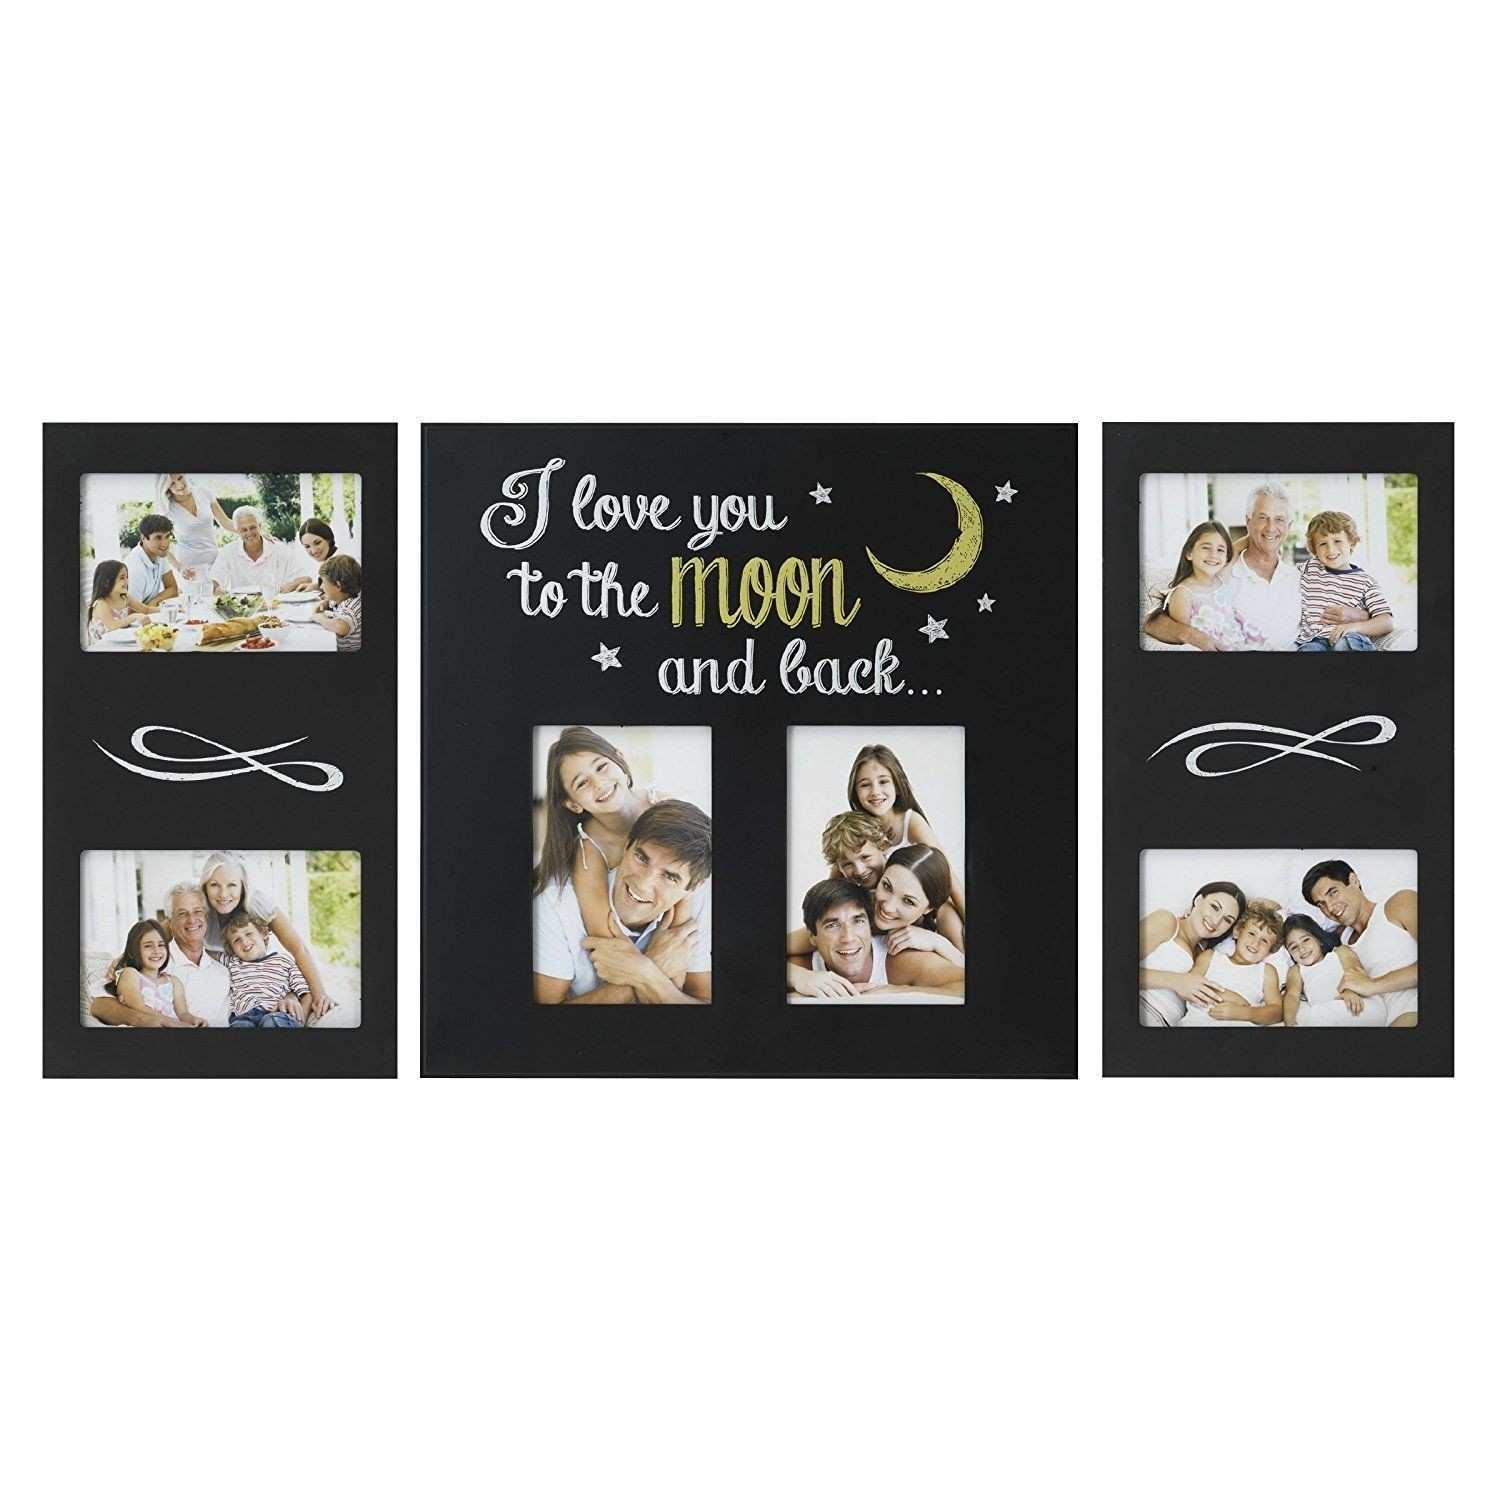 Melannco 3 Piece I Love You To The Moon and Back Plastic Collage